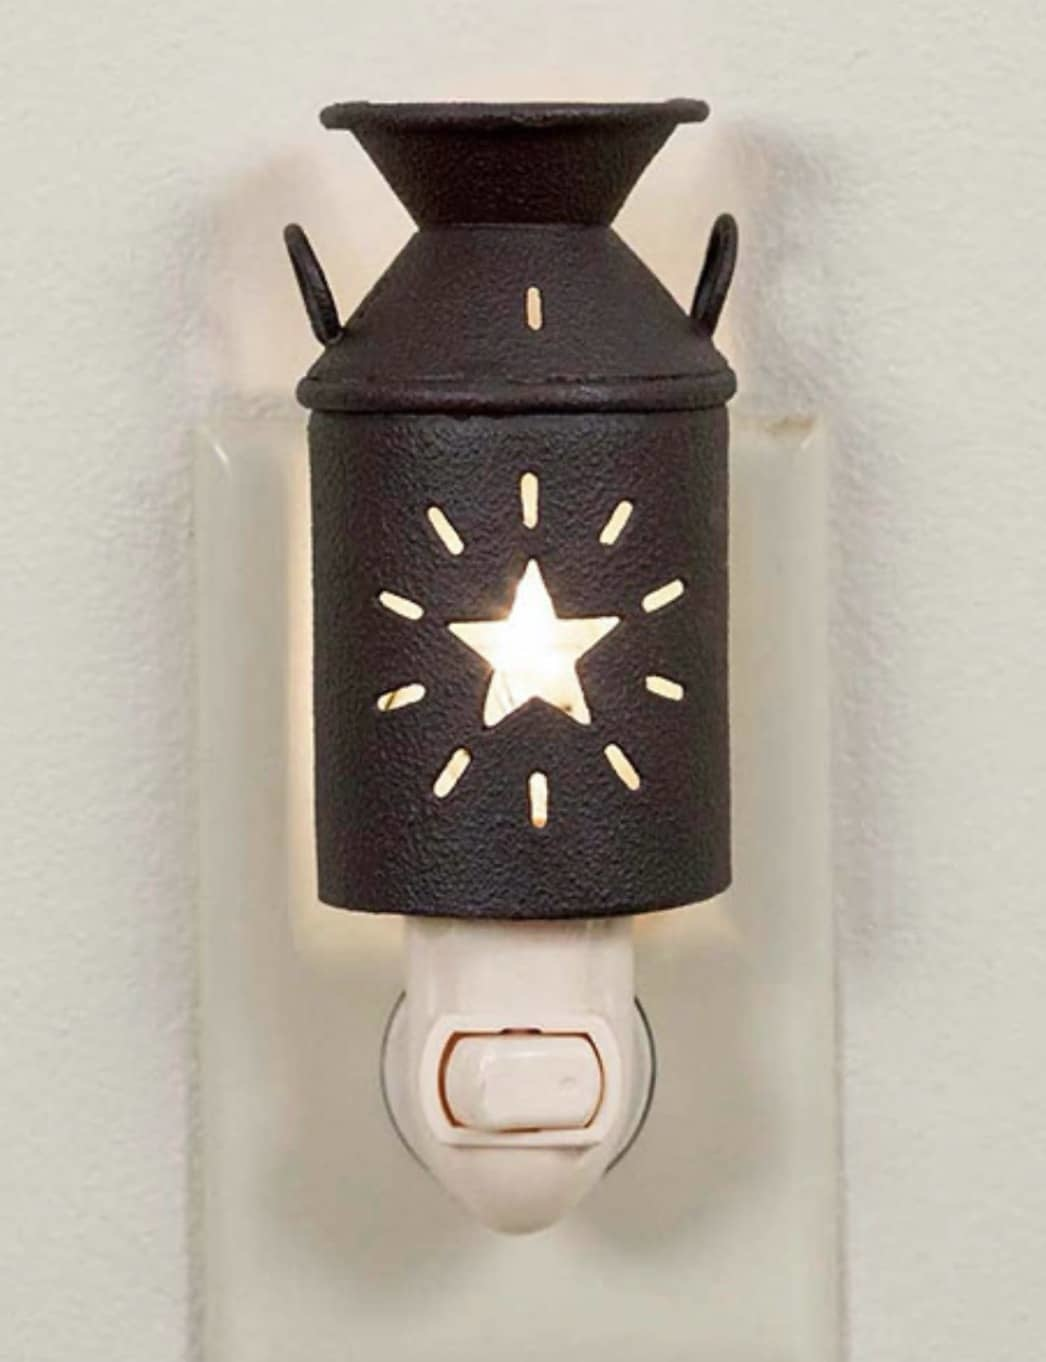 CTW Home Collection Pin Wheel Milk Pitcher Night Light